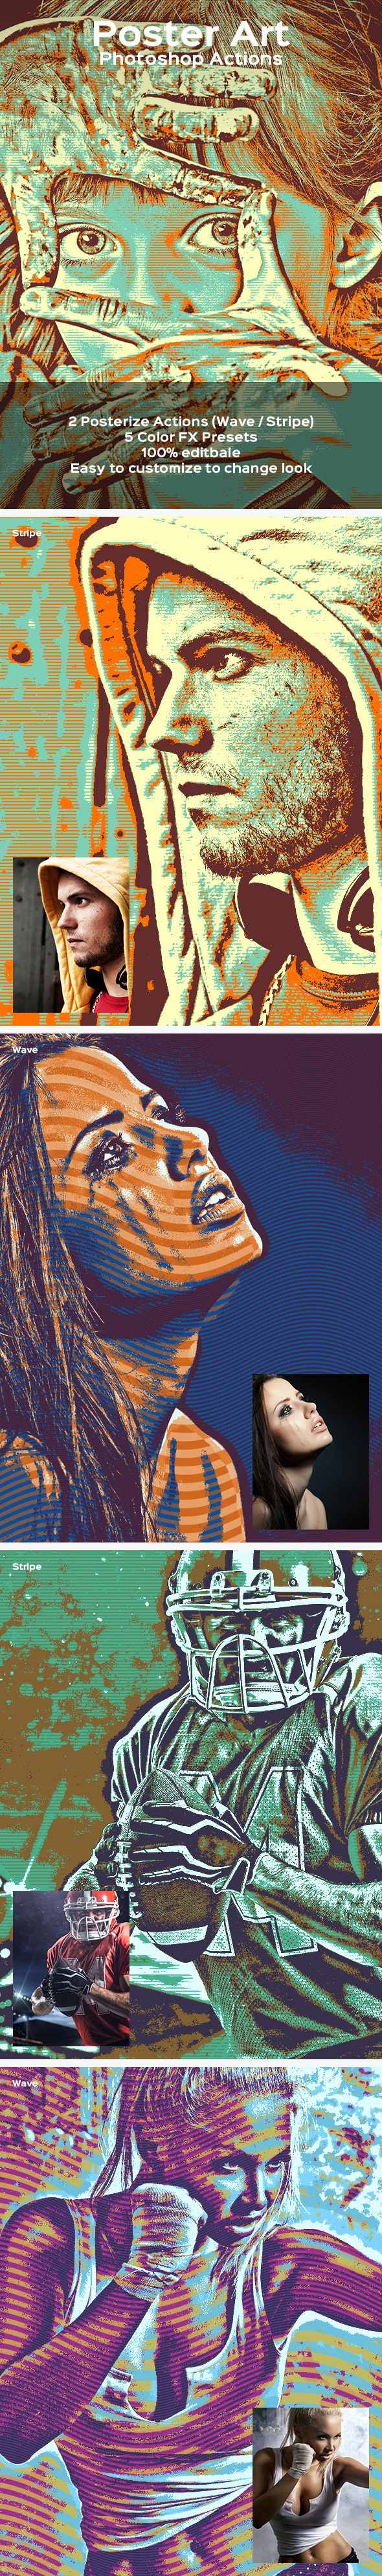 Poster Art - Photoshop Action - Photo Effects Actions